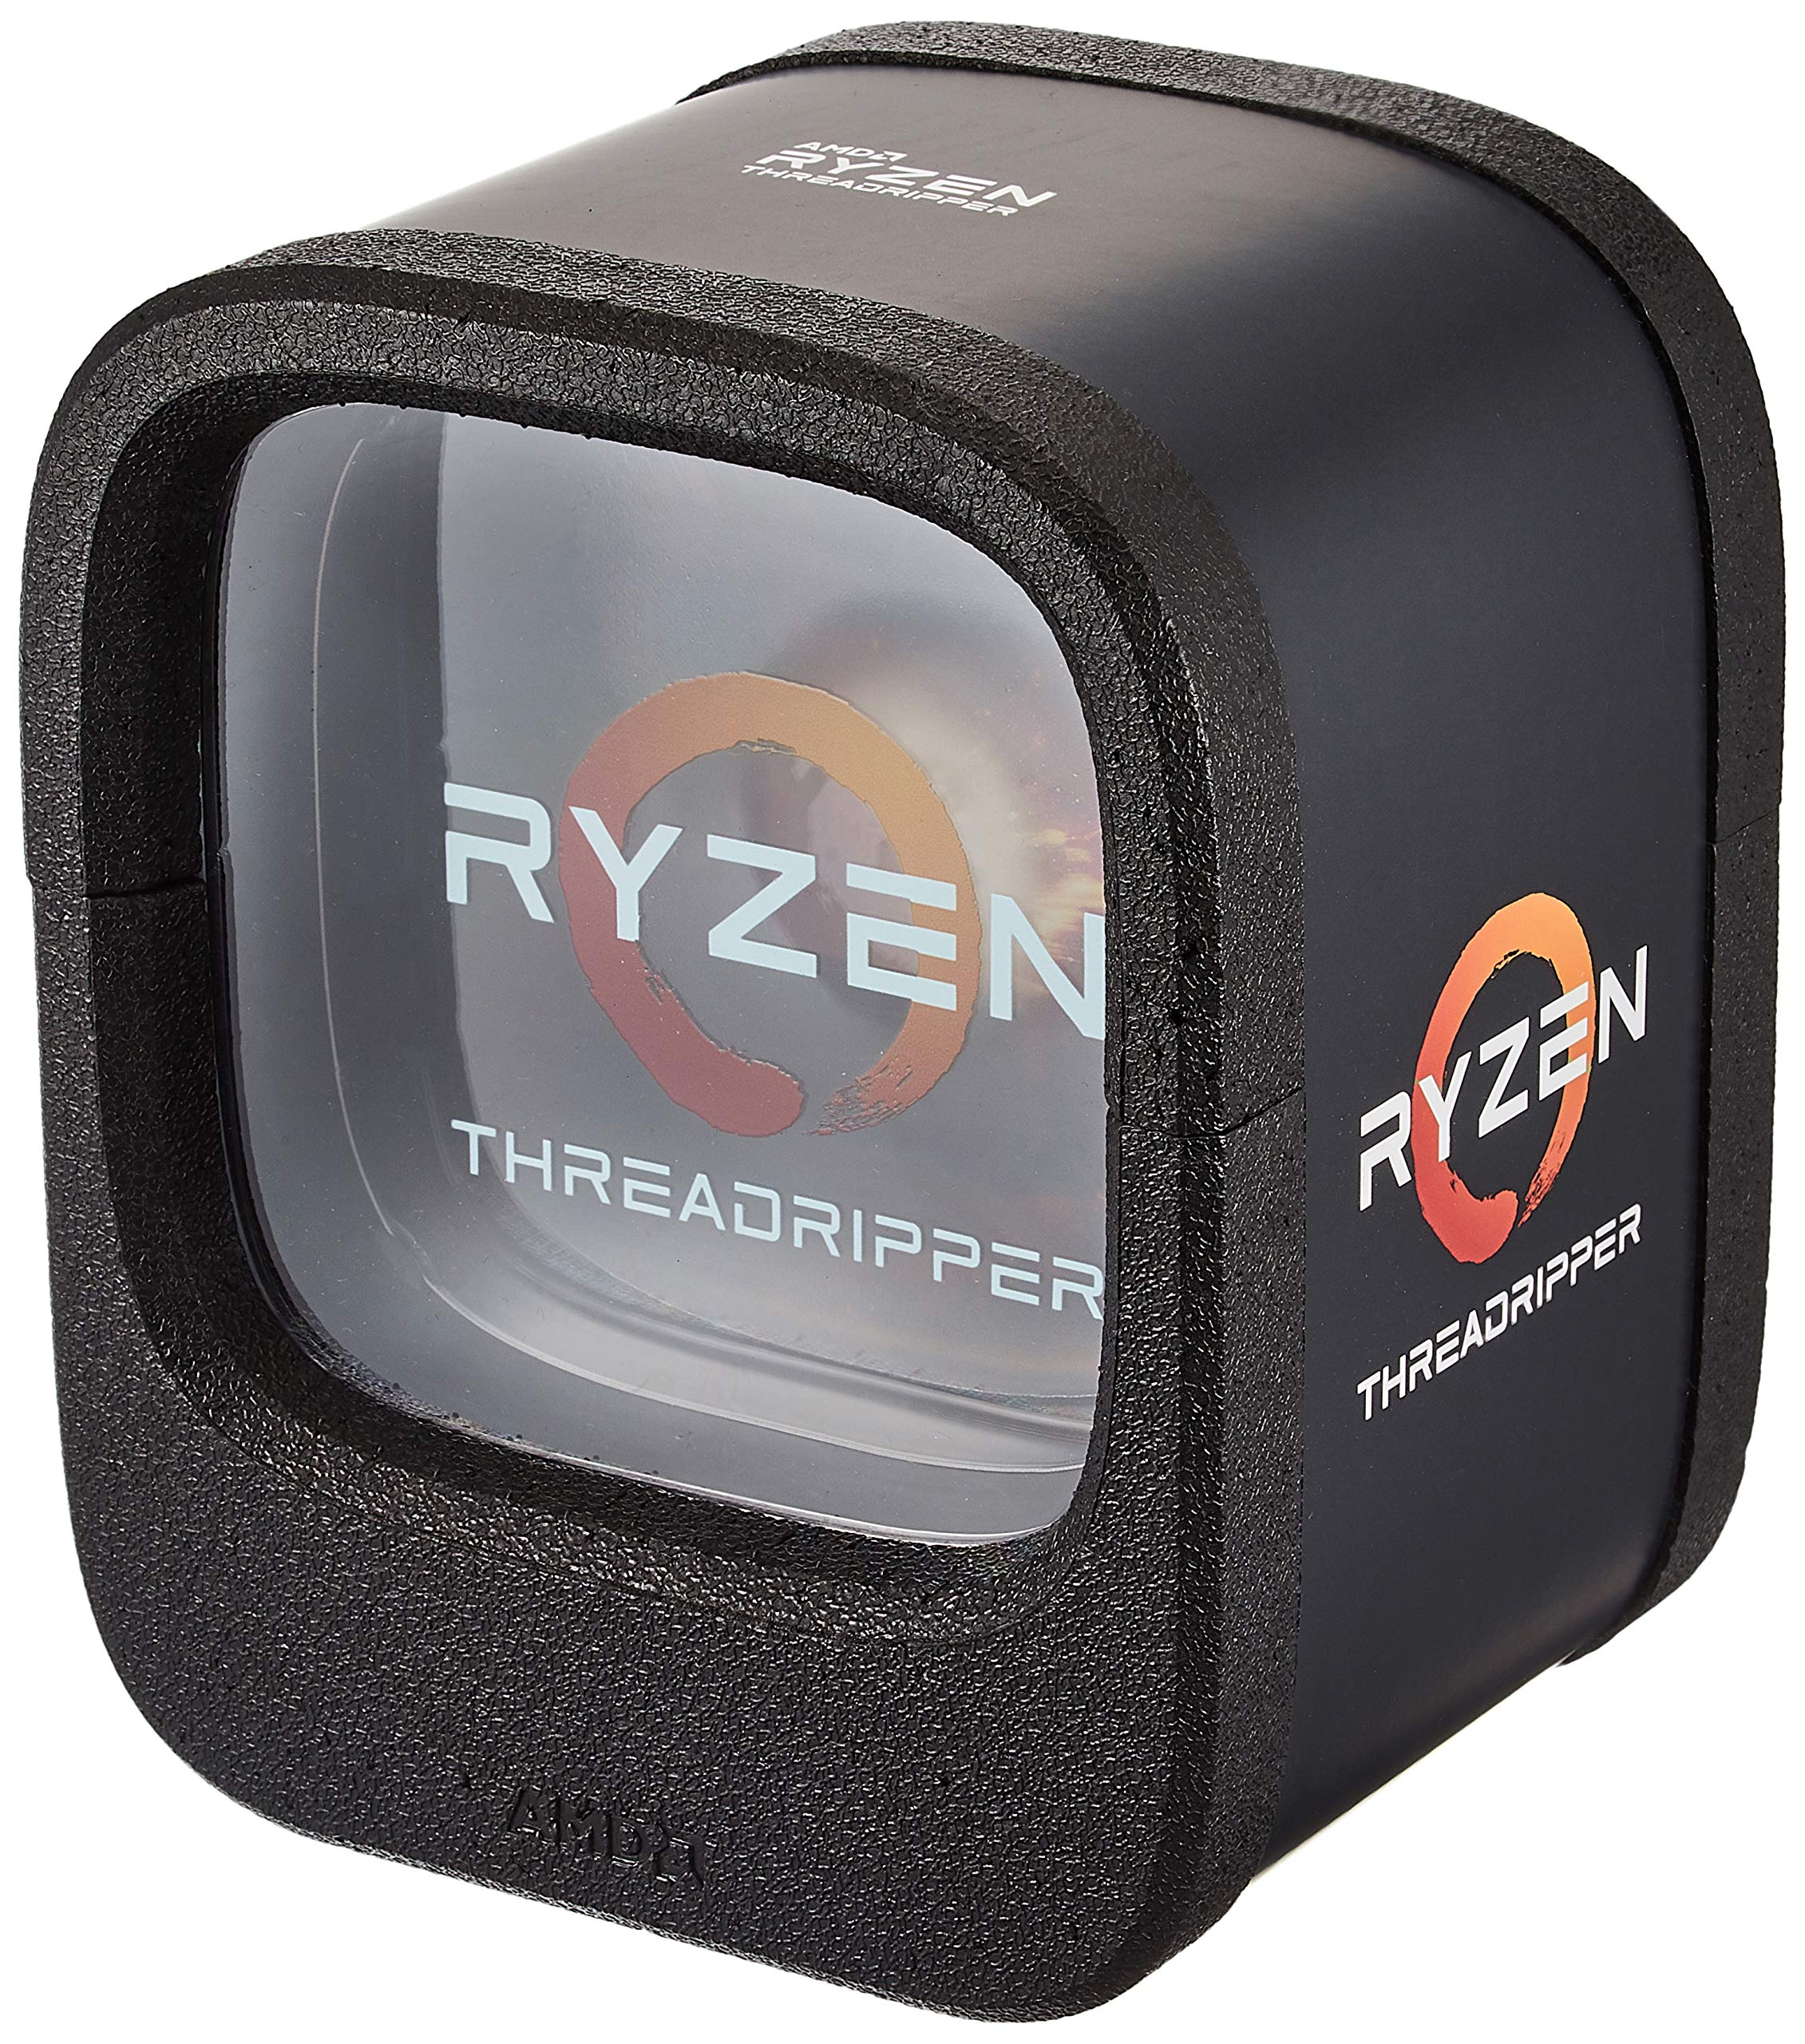 Amd Ryzen Threadripper 1900x (8-core/16-thread) (yd190xa8aew